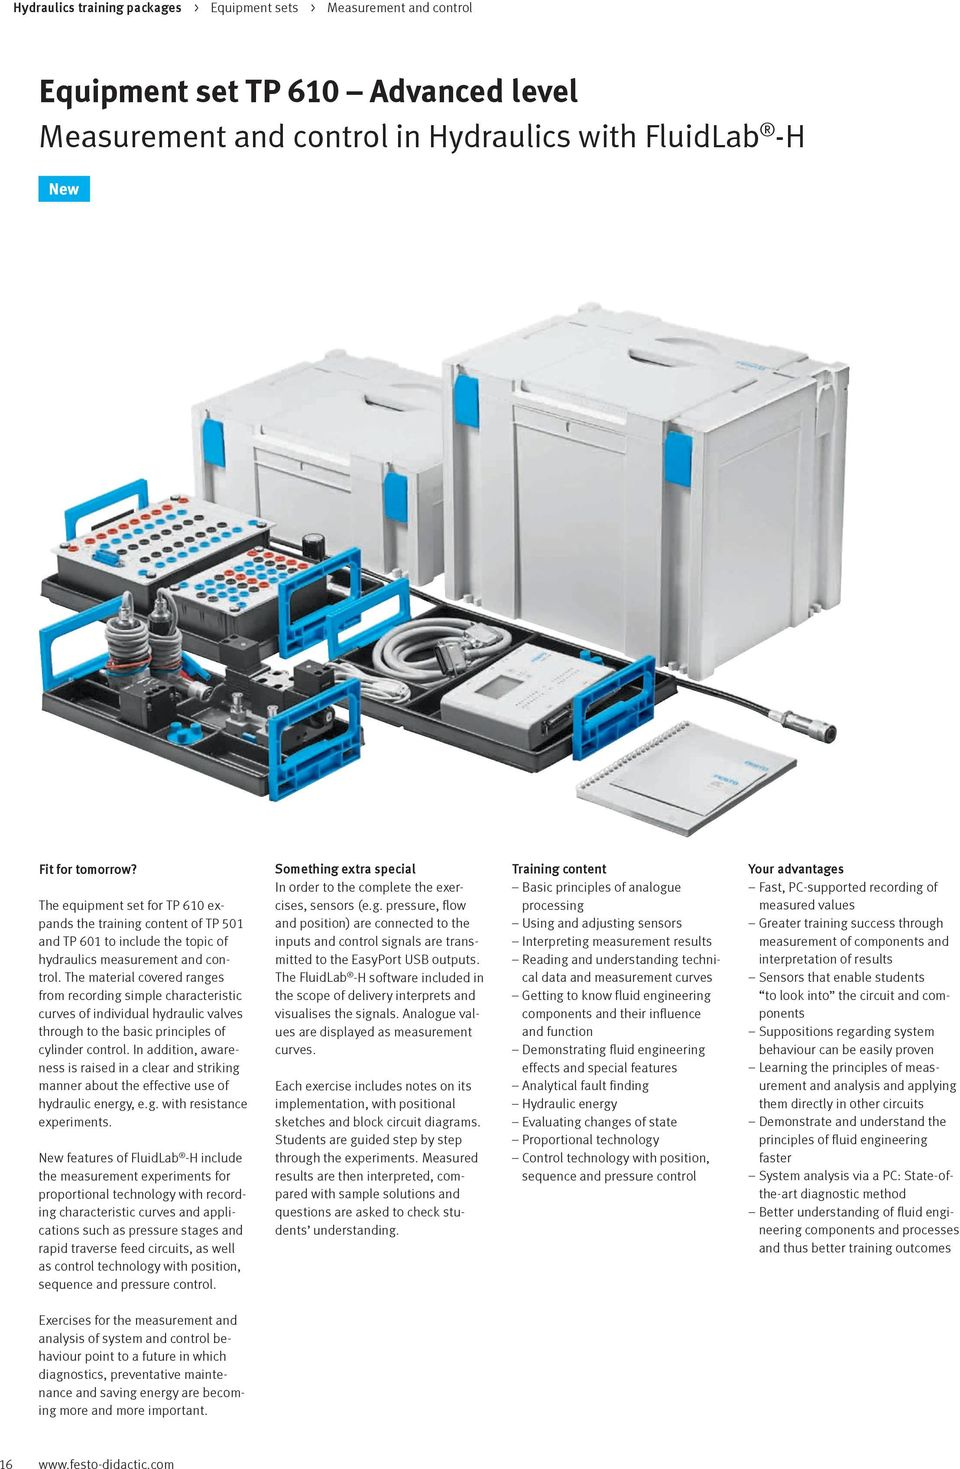 Hydraulics Vocational And Further Training With Festo Didactic Pdf Simple Hydraulic System Diagram Industrial The Material Covered Ranges From Recording Characteristic Curves Of Individual Valves Through To